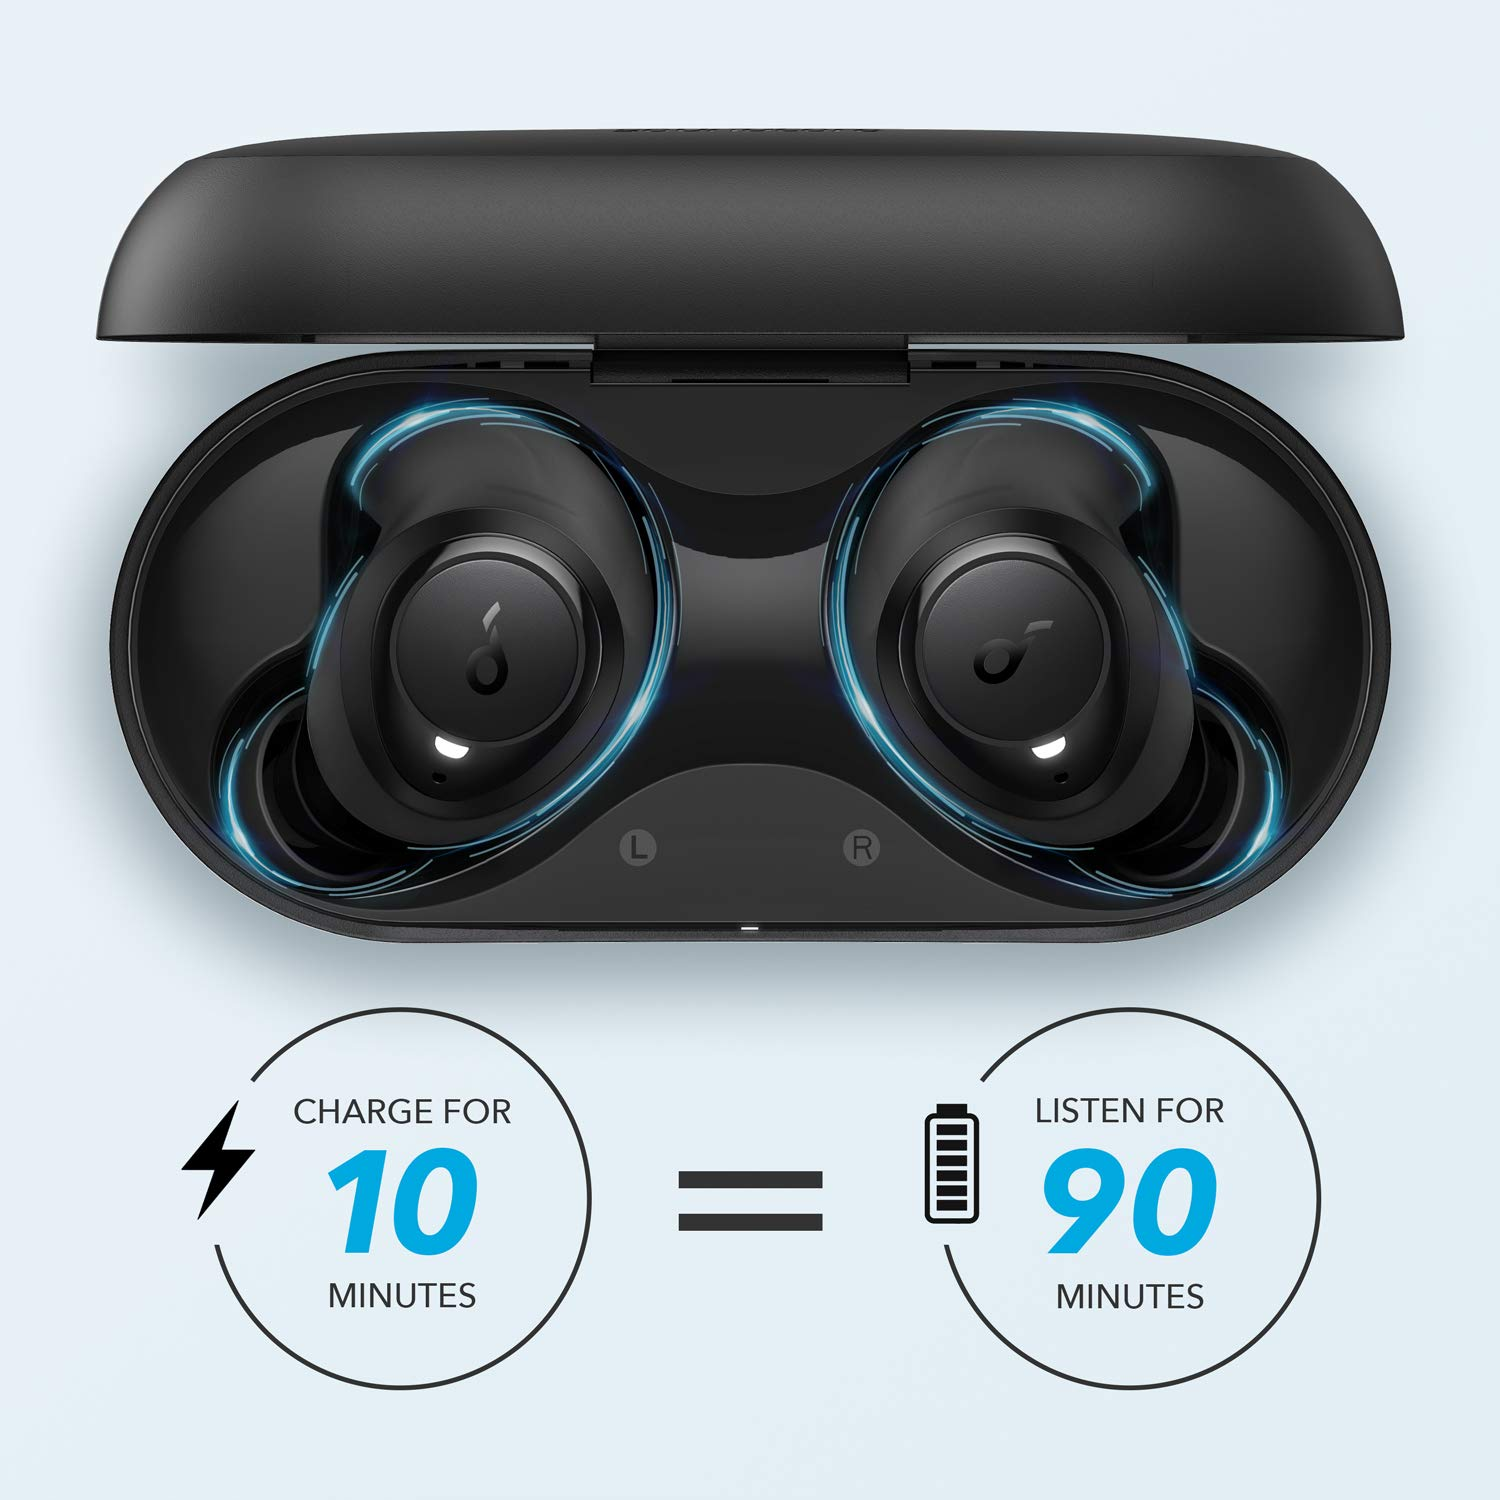 Bluetooth Earphones Anker Soundcore Life Dot 2 True Wireless Earbuds, 100 Hour Playtime, 8mm Drivers, Superior Sound, Secure Fit with AirWings, Comfortable Design Ear Buds for Commute, Sports, Jogging